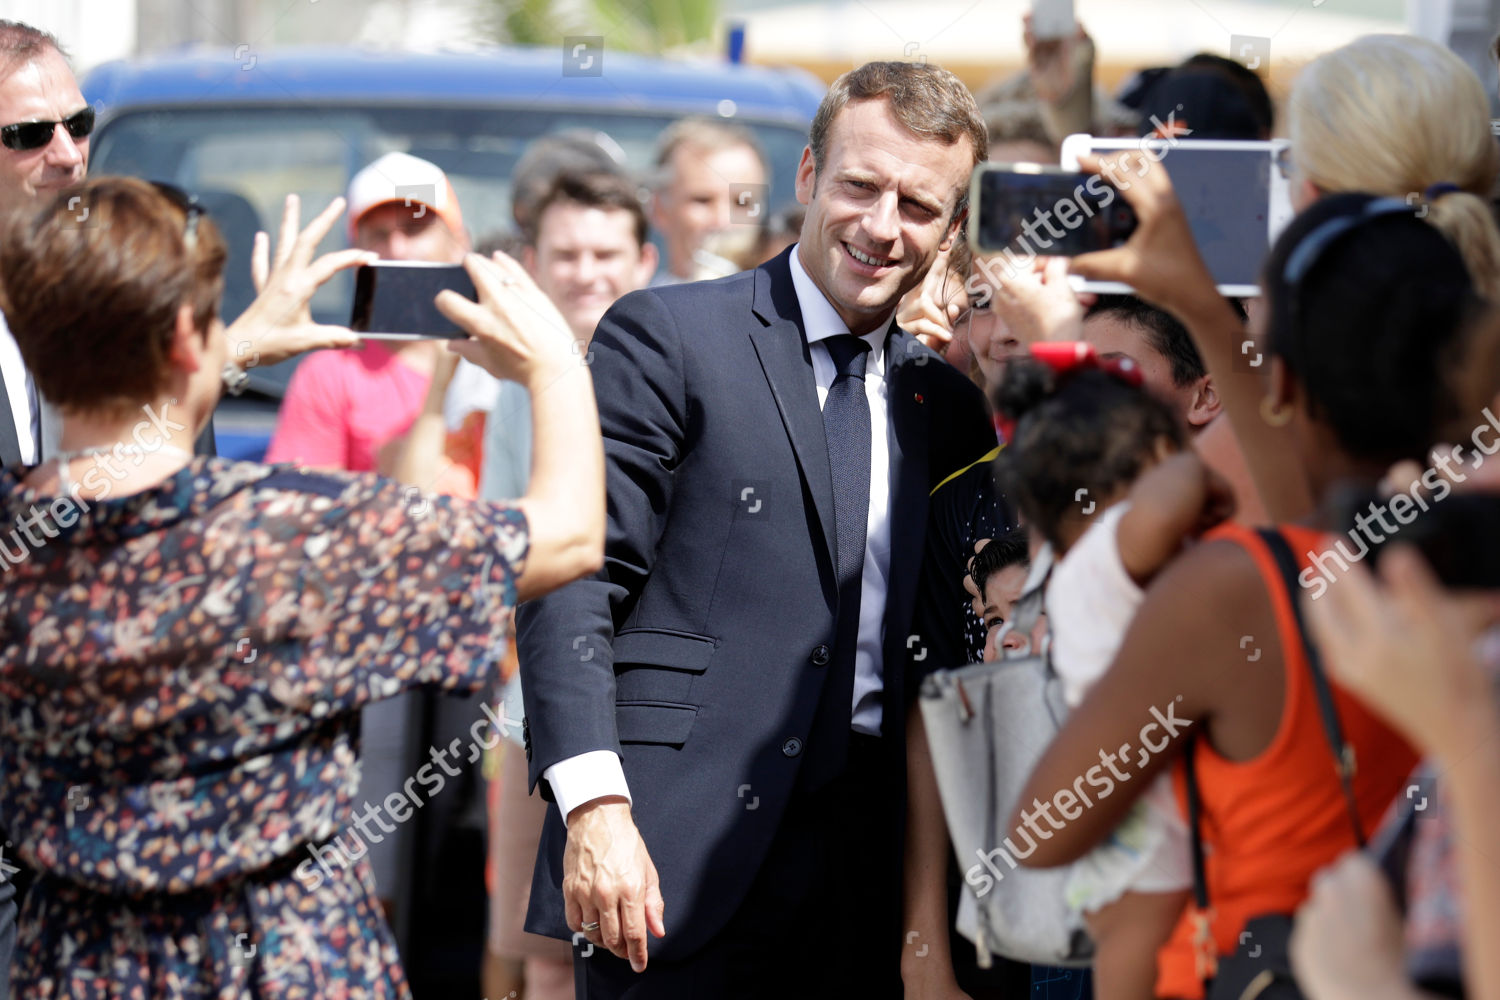 French President Emmanuel Macron C Poses Pictures Editorial Stock Photo Stock Image Shutterstock